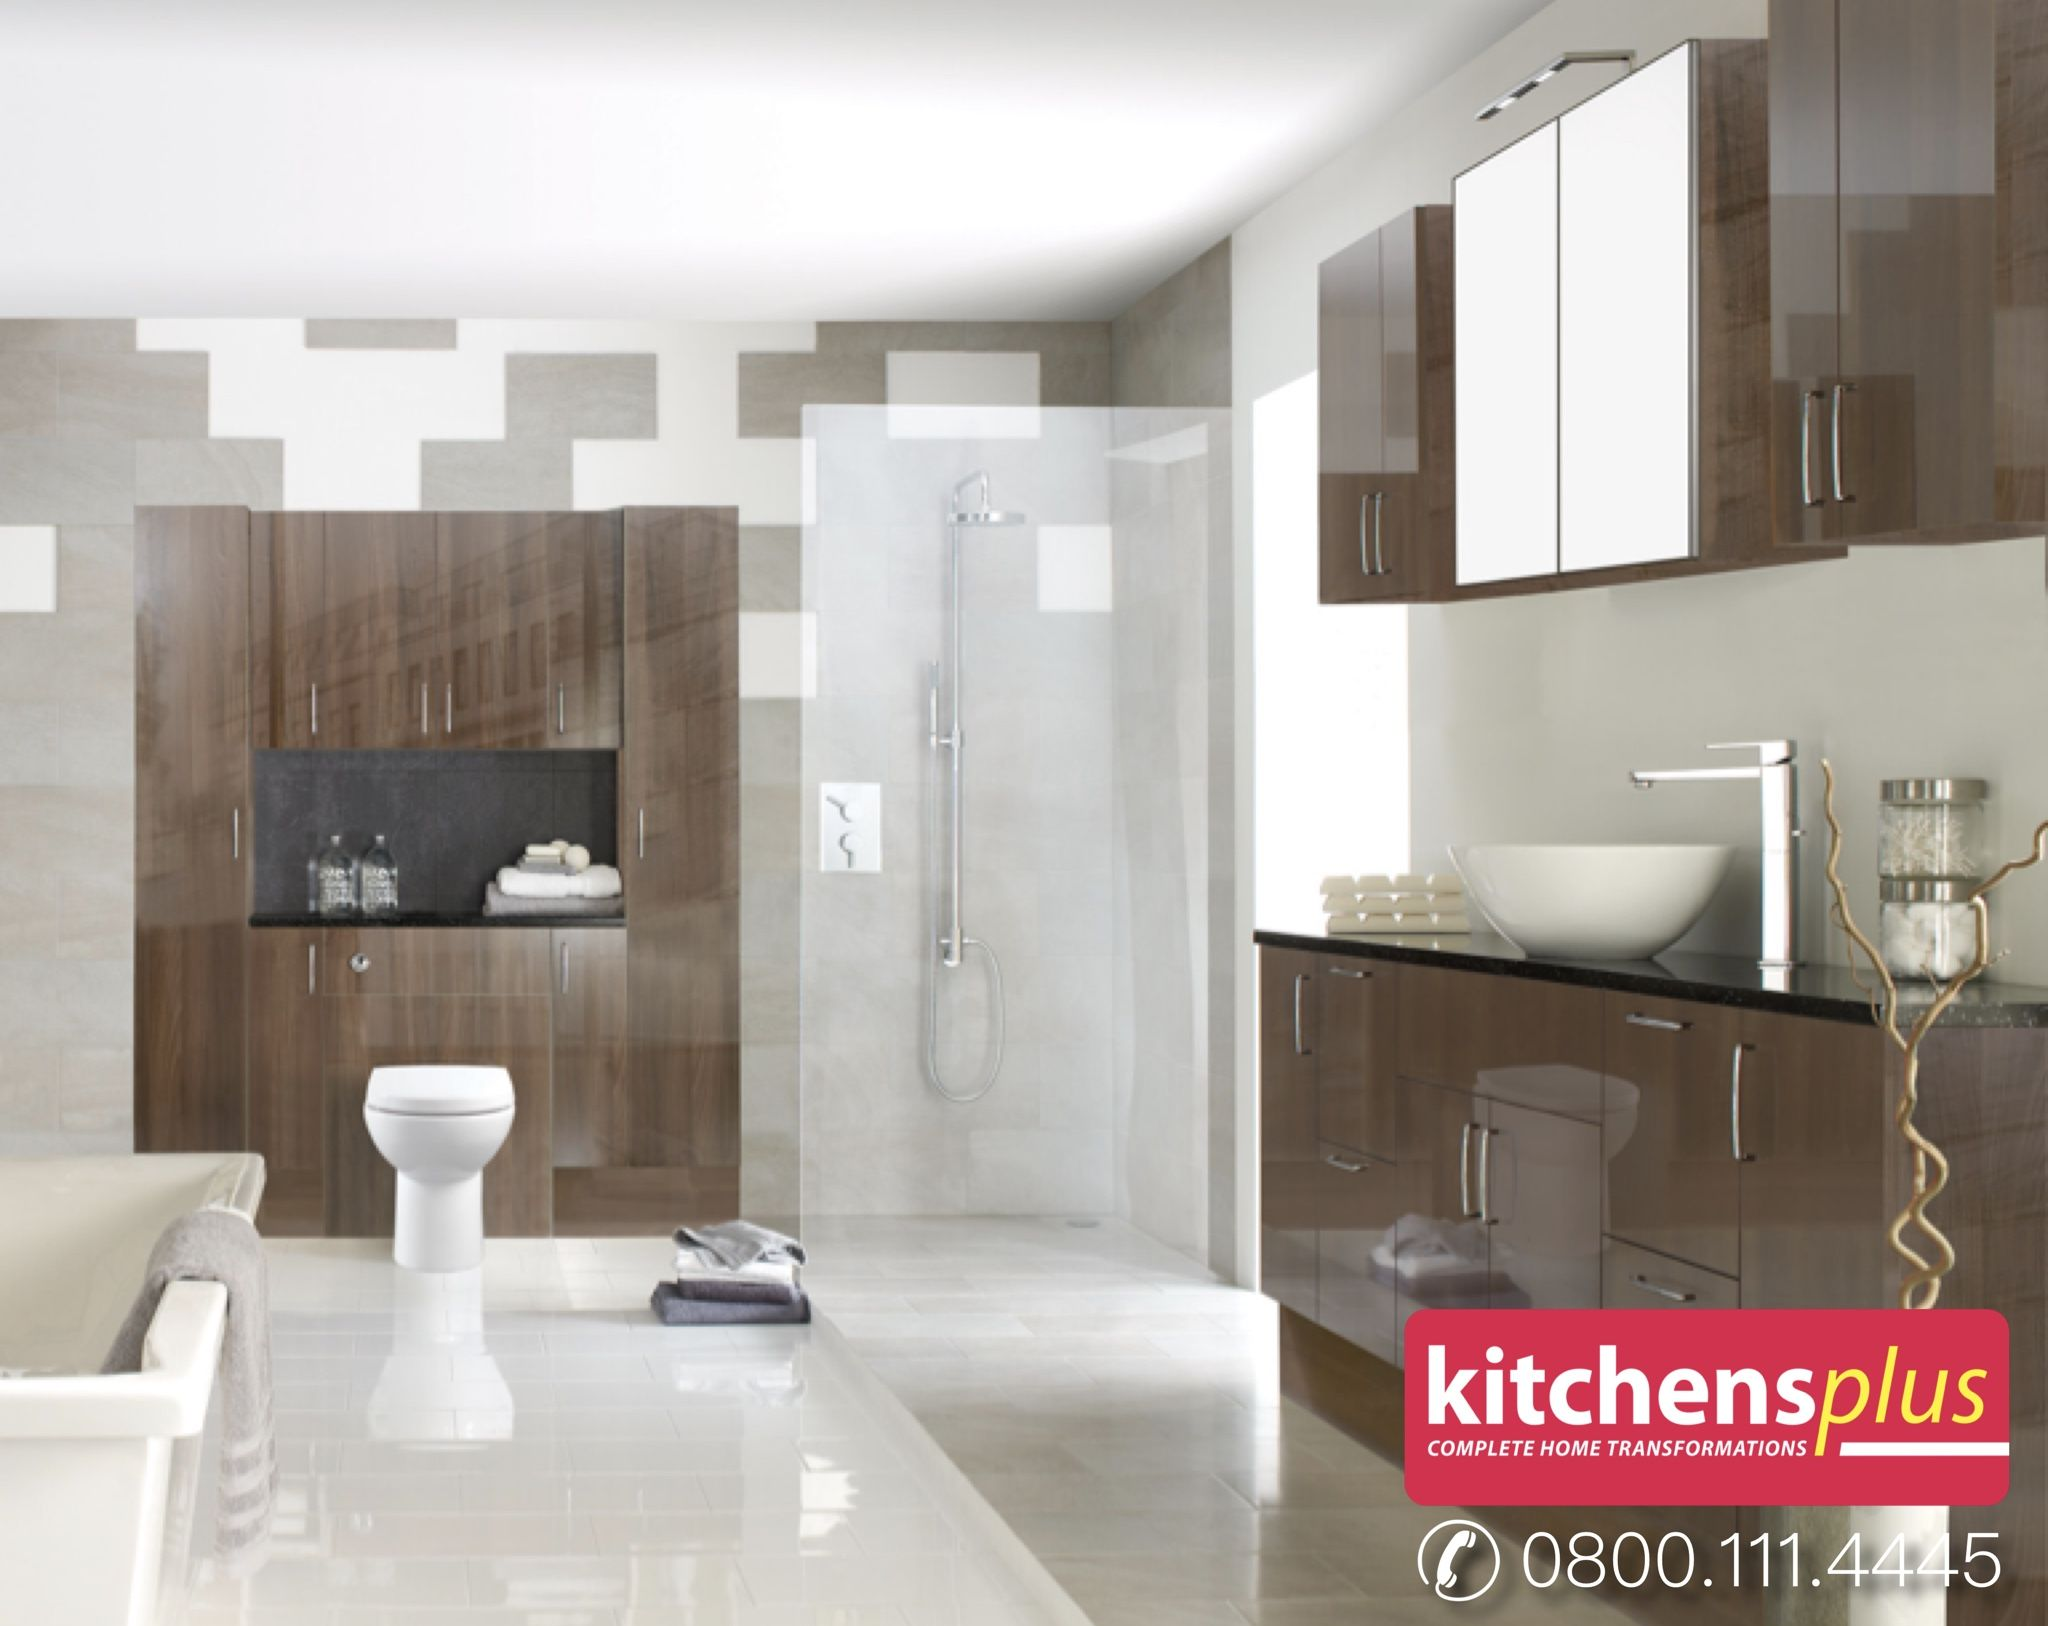 The #kitchensPlus remodeling procedure is comprehensive, helping you ...